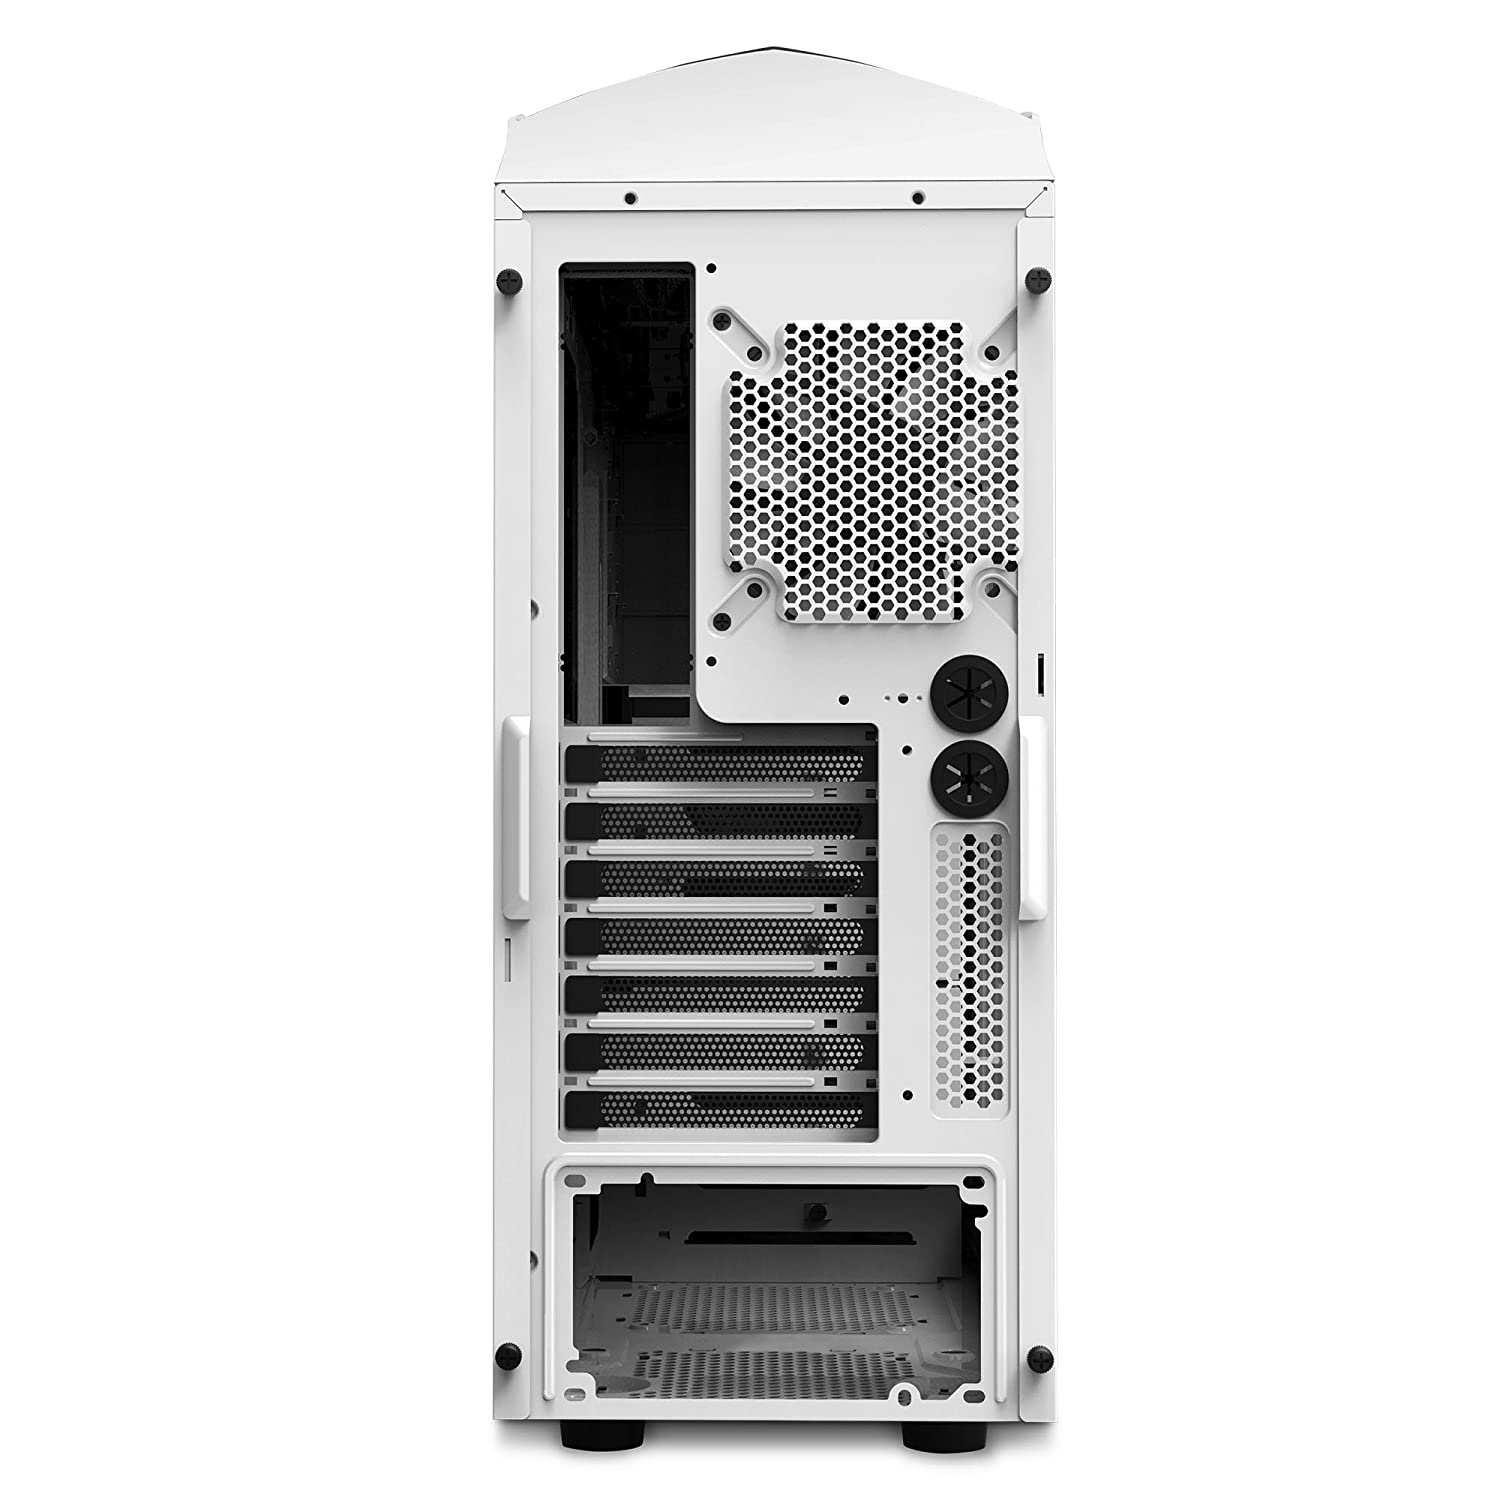 Amazon.com: NZXT Phantom 240 Mid Tower Computer Case, White (CA-PH240-W1):  Computers & Accessories